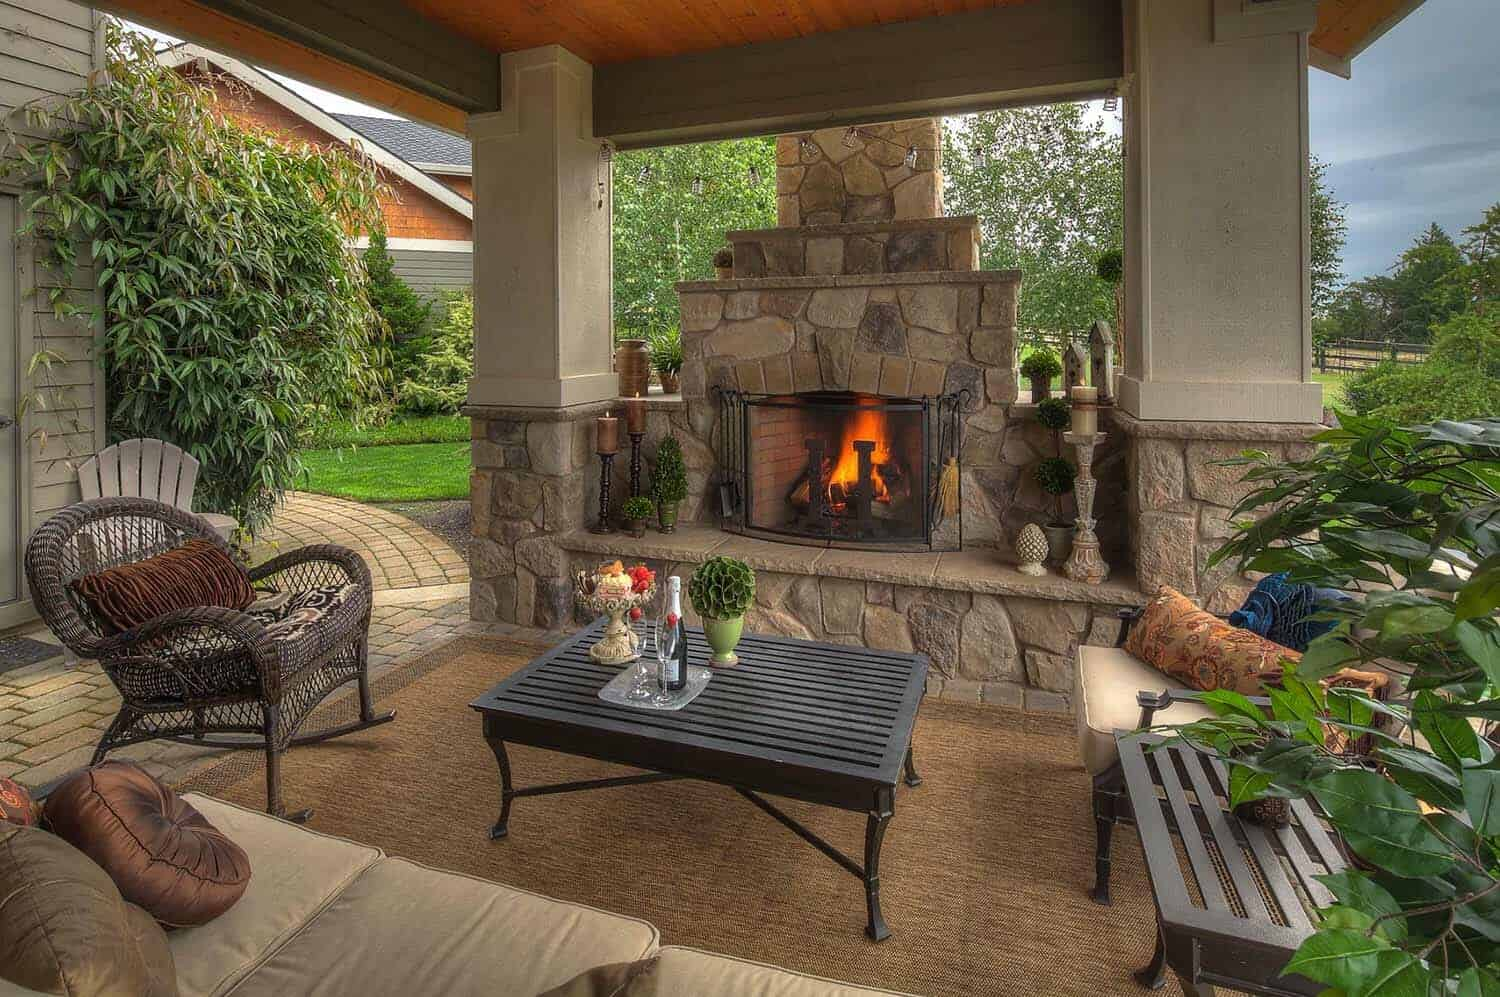 30+ Irresistible outdoor fireplace ideas that will leave ... on Outdoor Kitchen And Fireplace Ideas id=56779